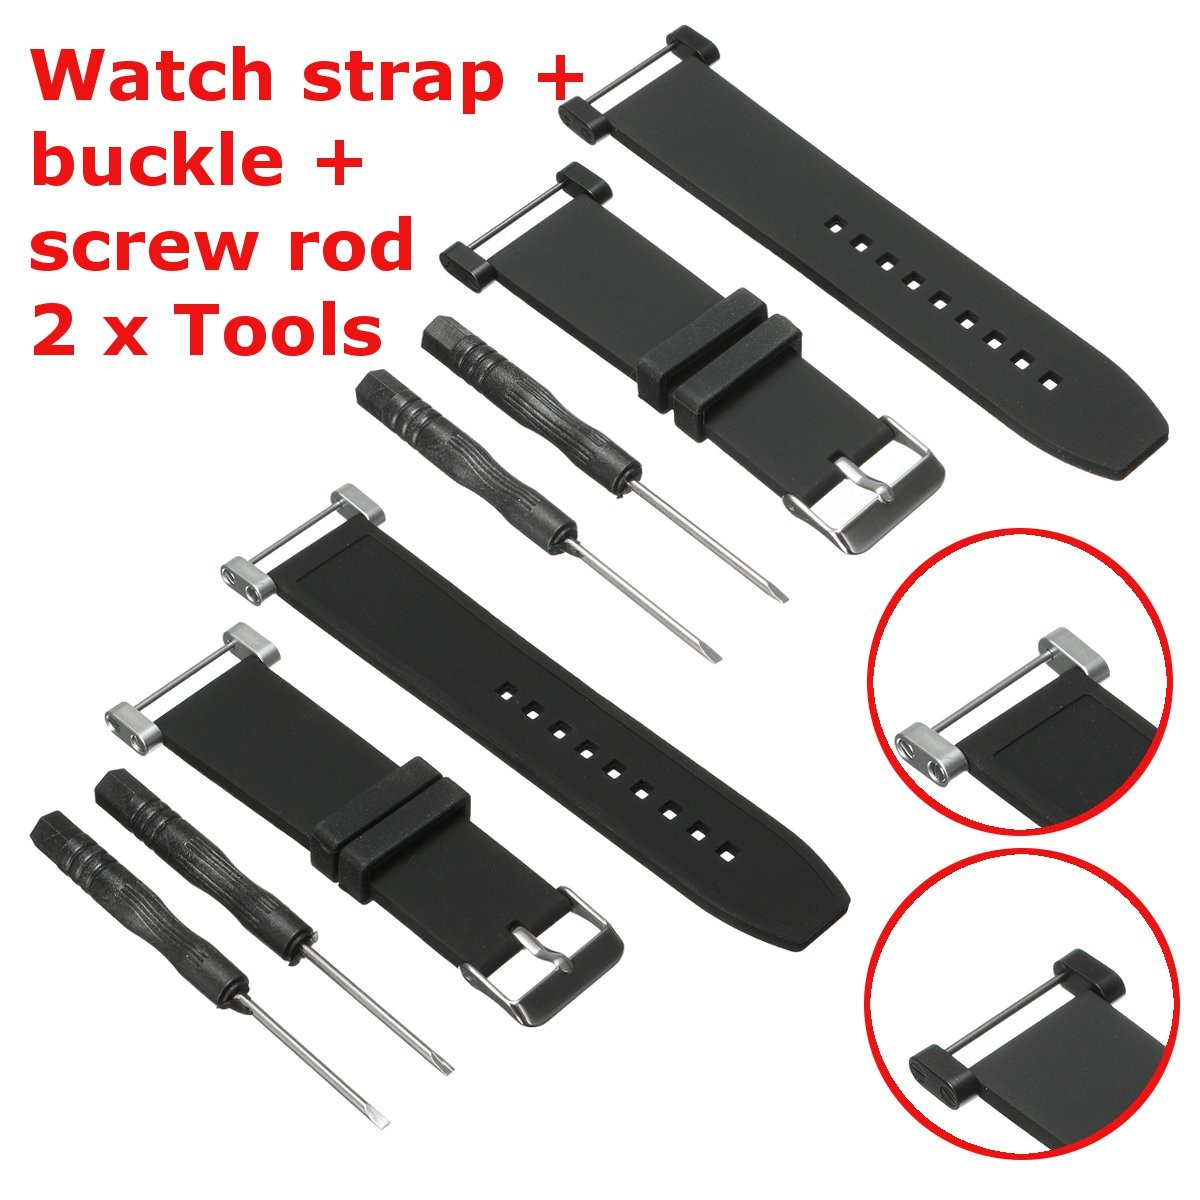 Watchband Watch Strap 22MM Black Soft Rubber Silicone+Stainless Buckle + Screw Rod Replacement For Suunto Core Accessories<br><br>Aliexpress